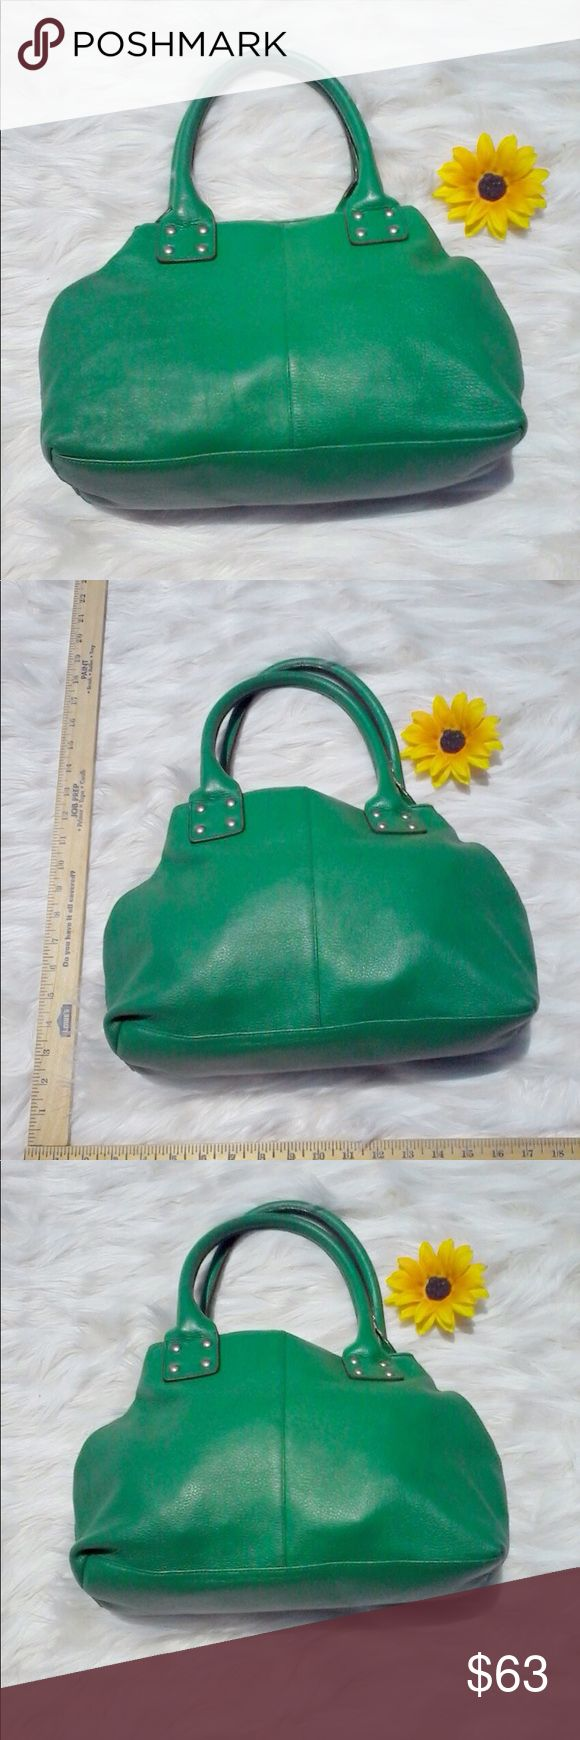 GAP BAG HOBO IN SIMPLE SAGE GREEN This is I simple but pretty very green gap bag big & comfortable this bag has a lot to offer someone always on the go! GAP Bags Hobos